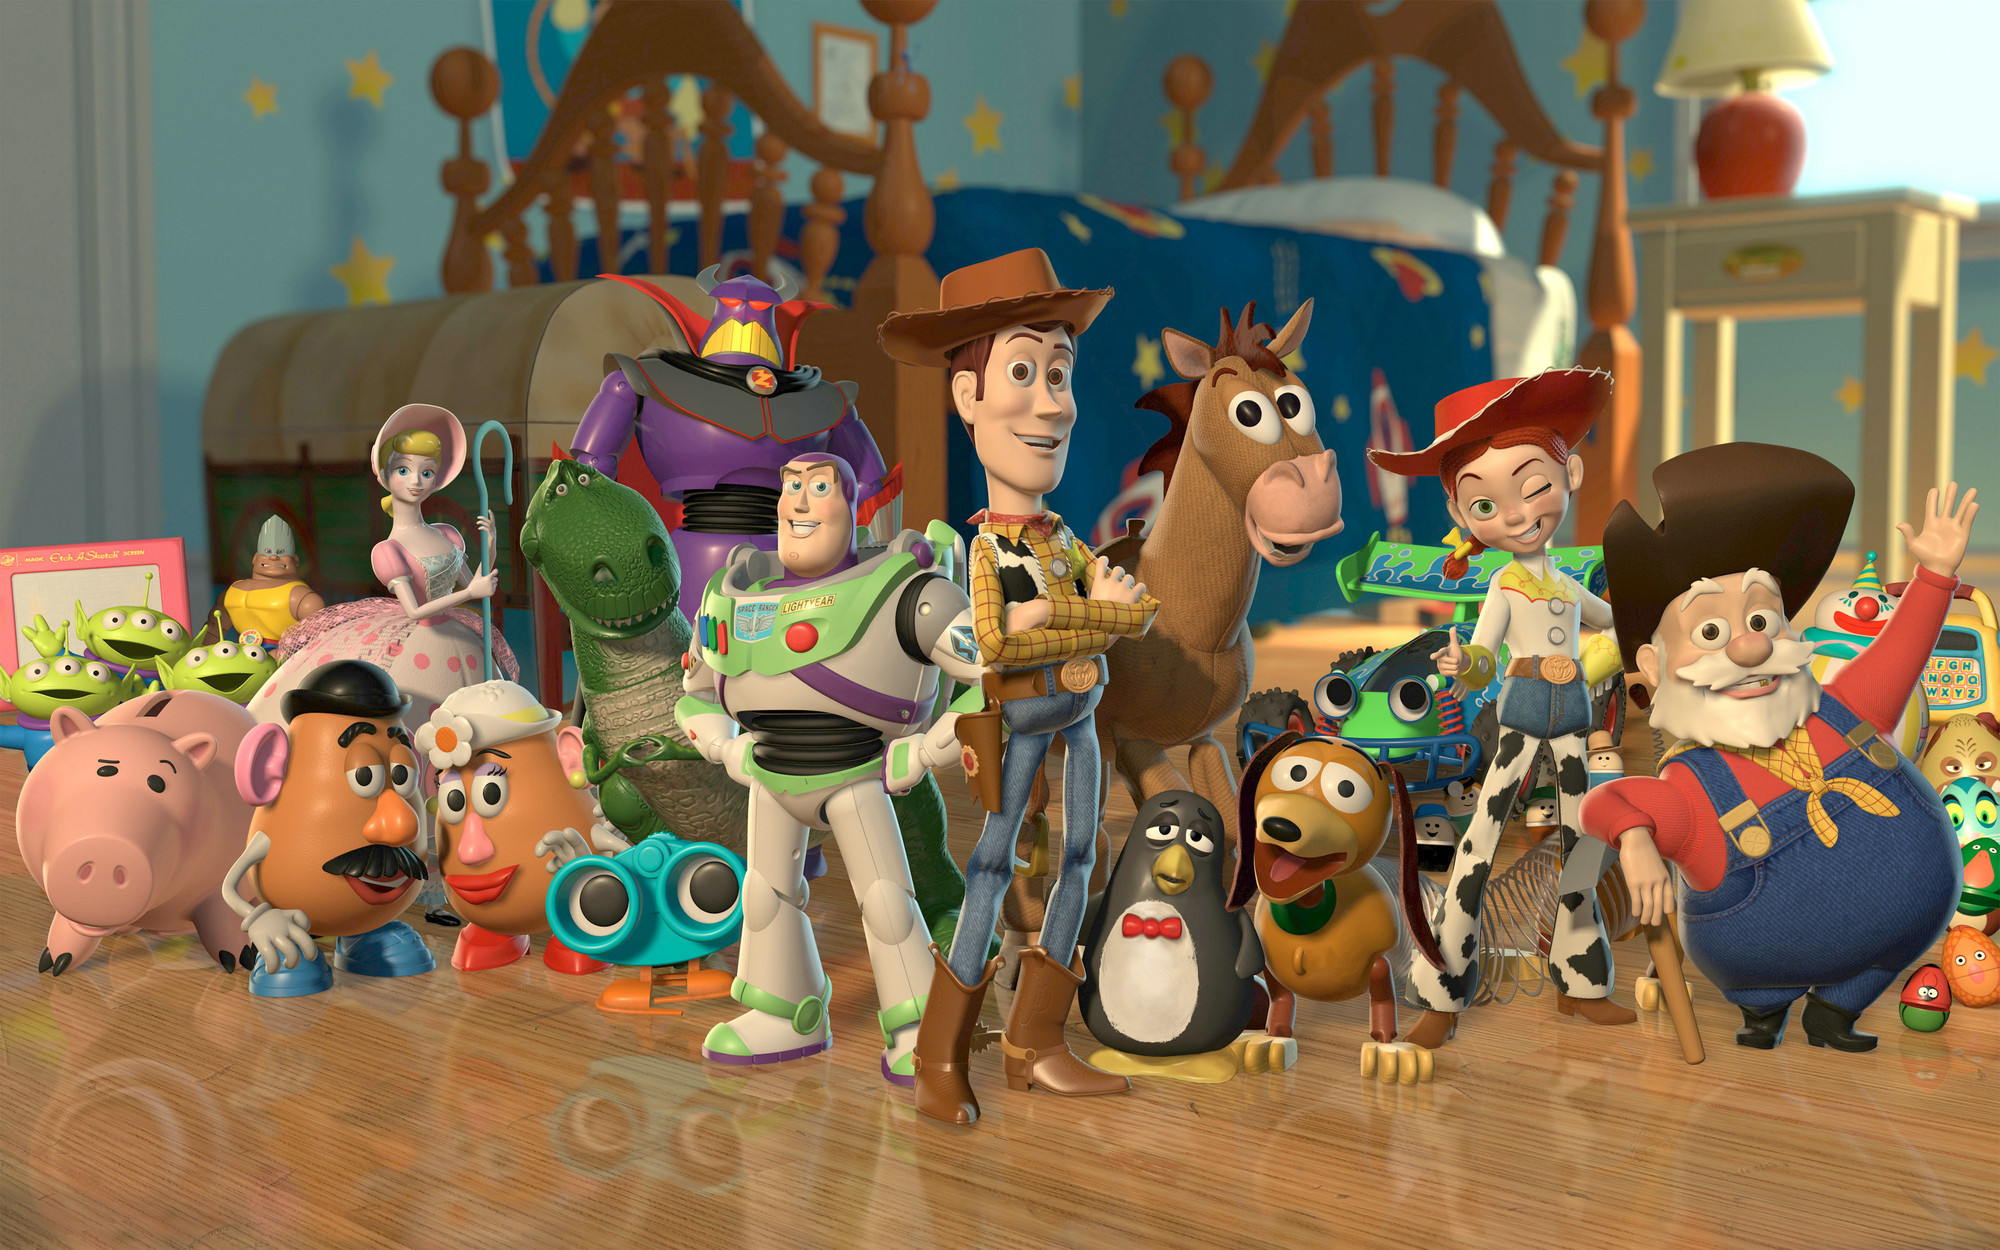 Toy Story 2. 1999. USA. Directed by John Lasseter